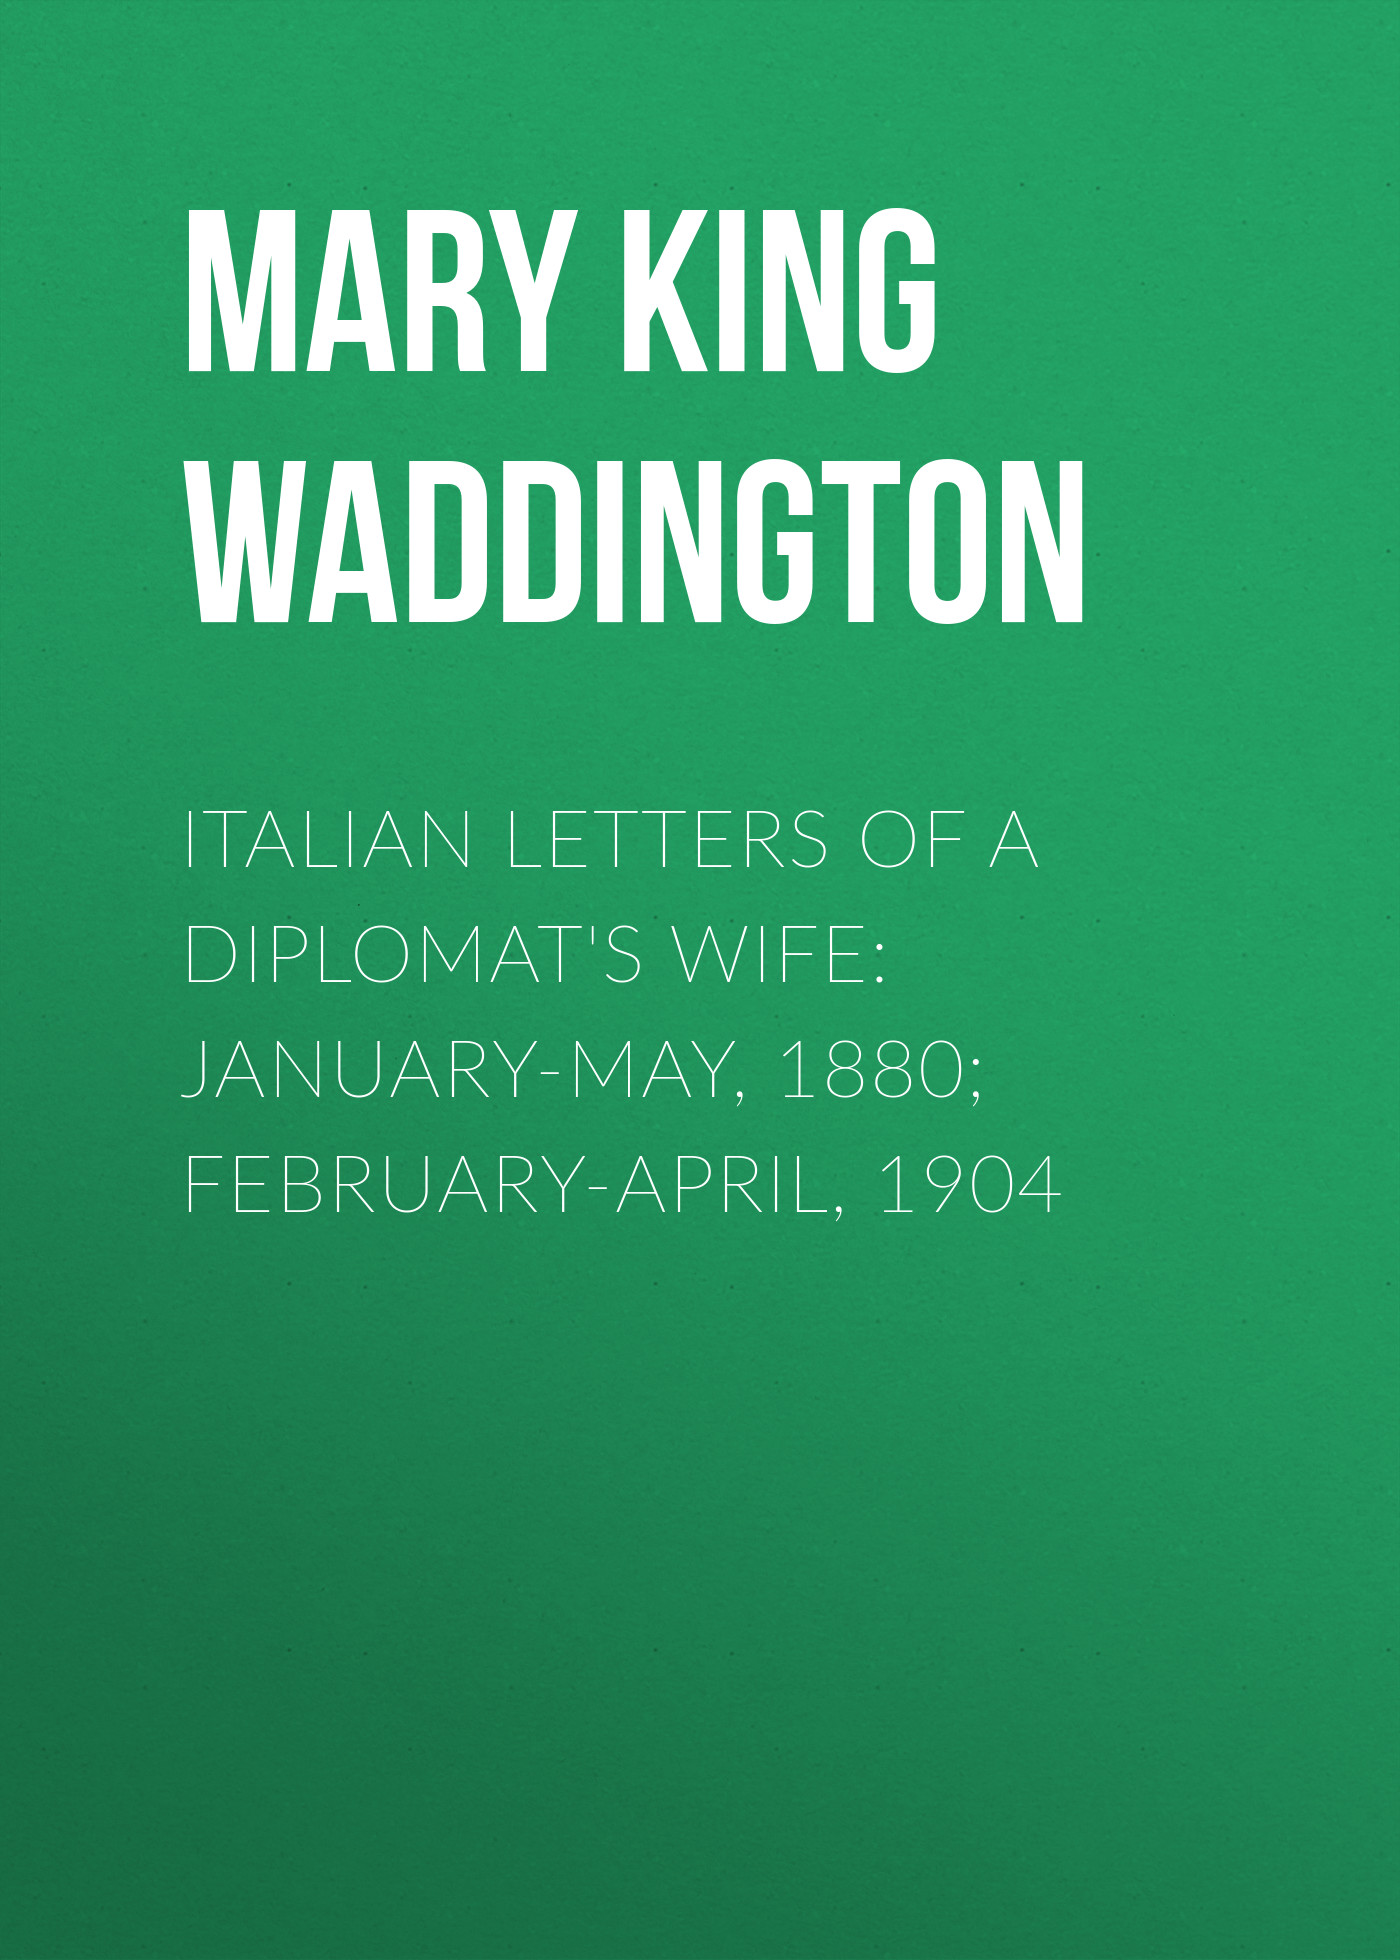 Mary King Waddington Italian Letters of a Diplomat's Wife: January-May, 1880; February-April, 1904 parks a bloody january